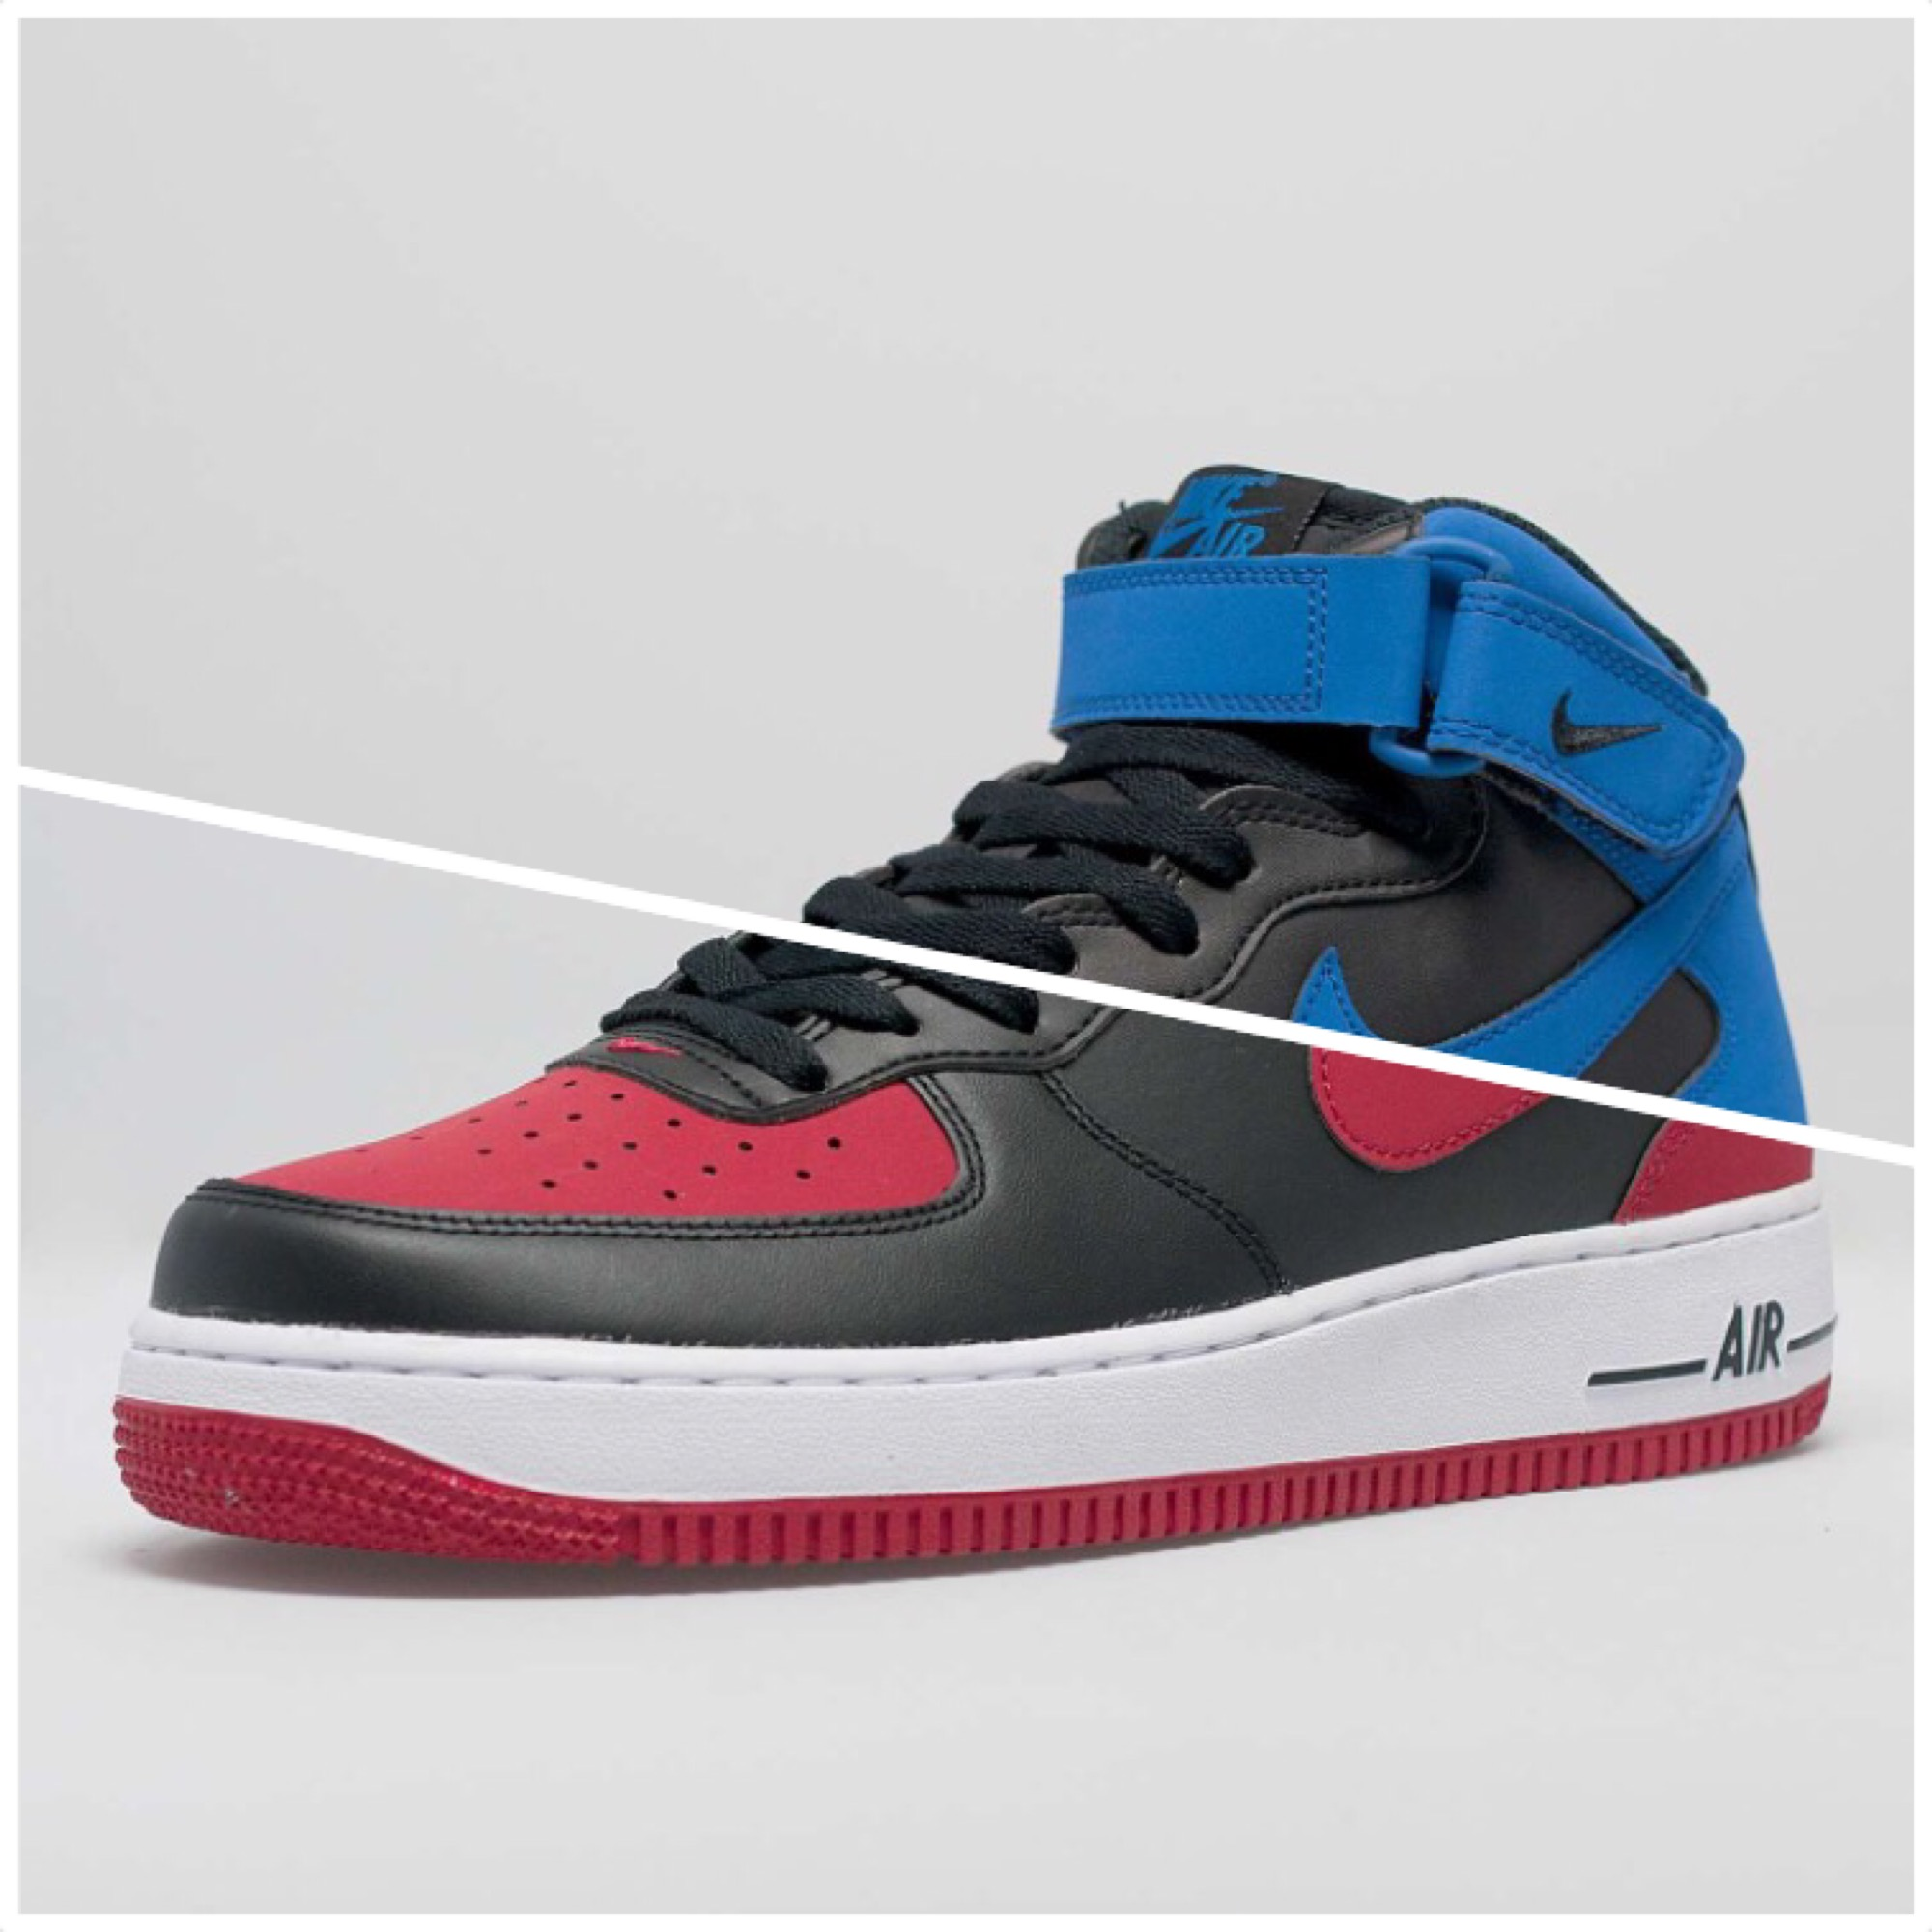 Nike Air Force 1 Mid Colorways Inspired by the 'Bred ...